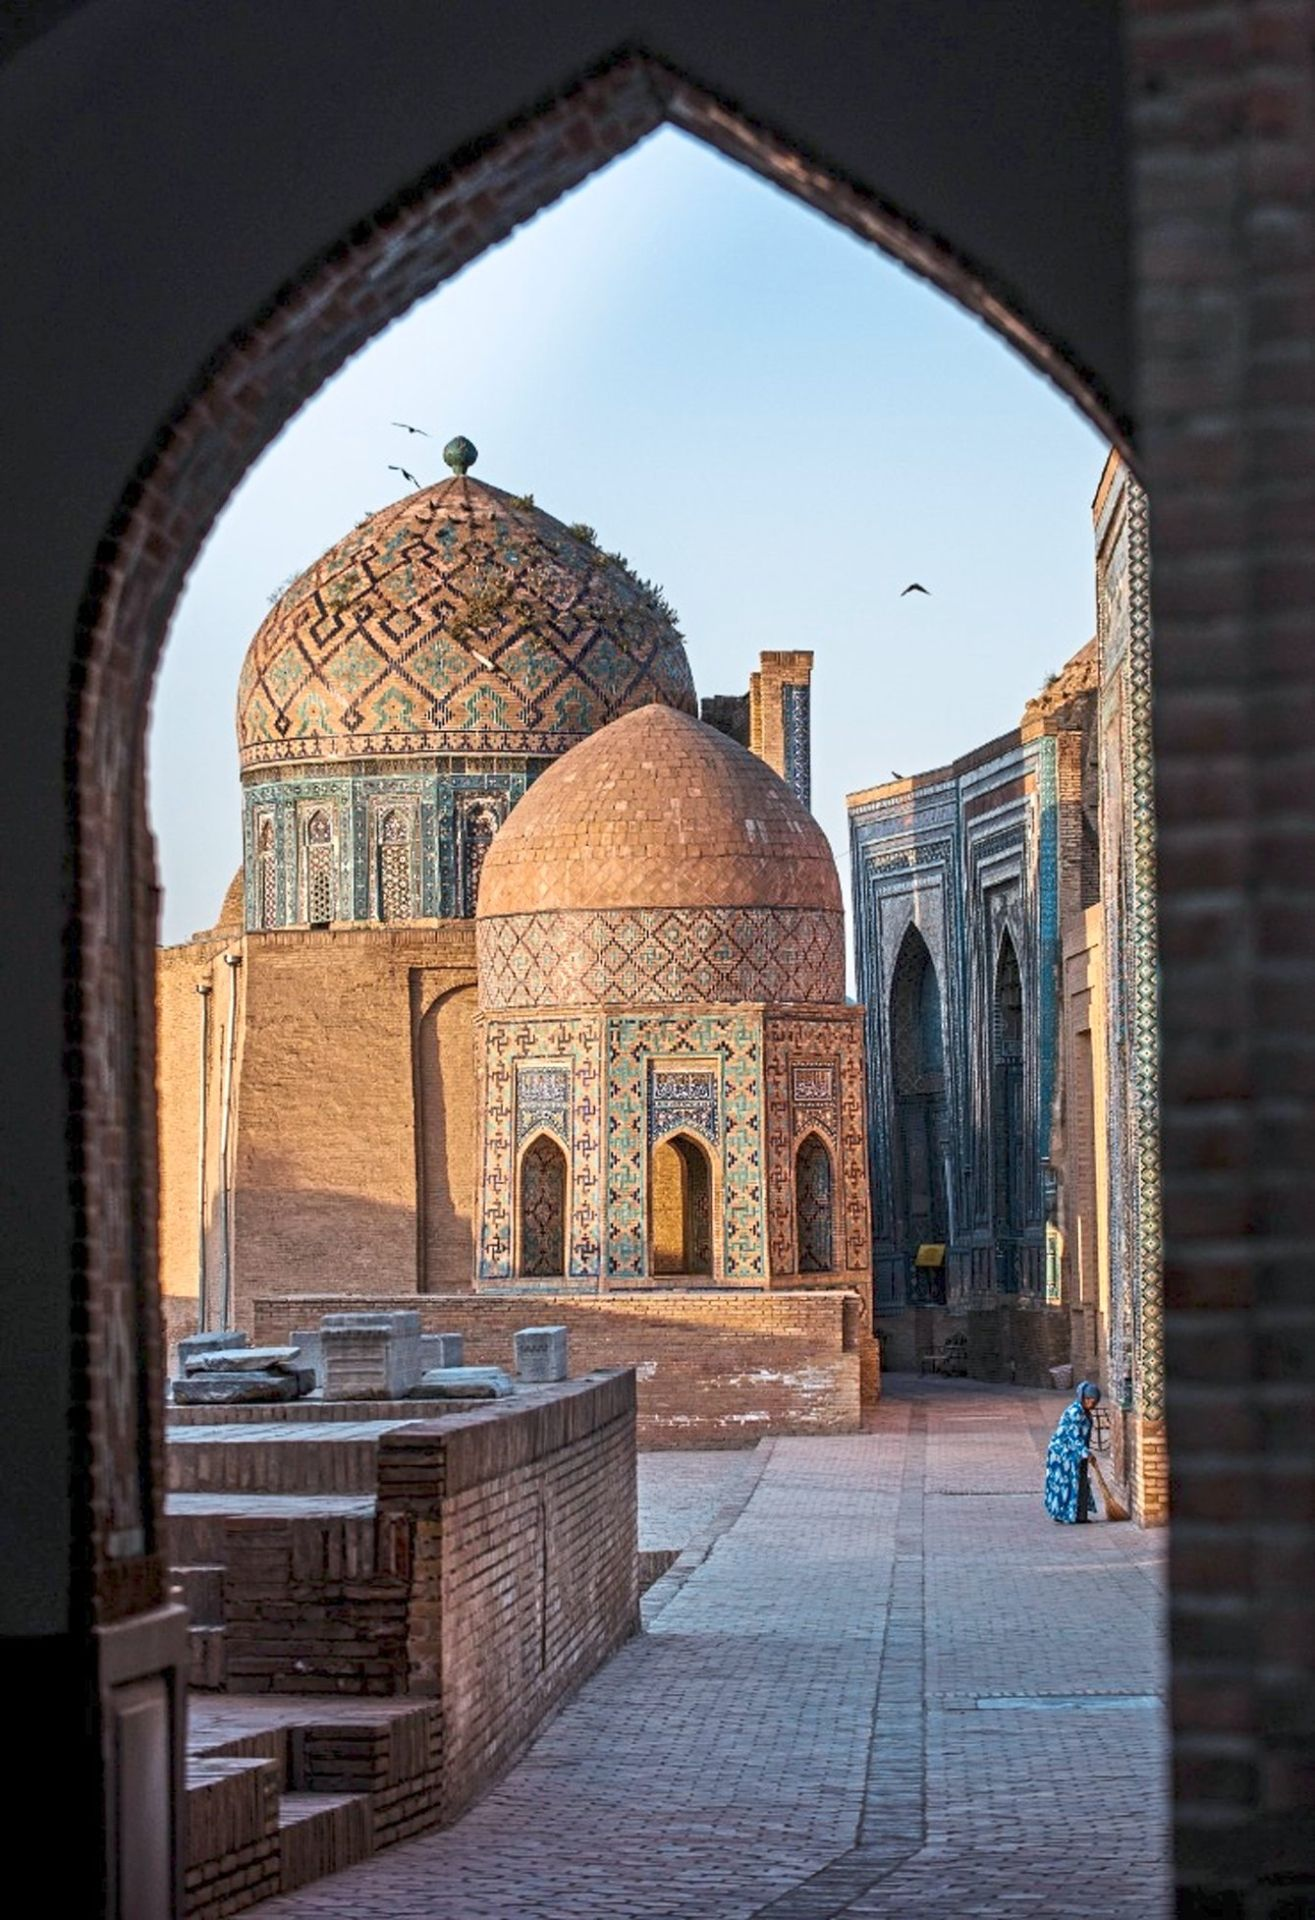 The Gur-e-Amir mausoleum in Samarkand is one of the popular places to visit.